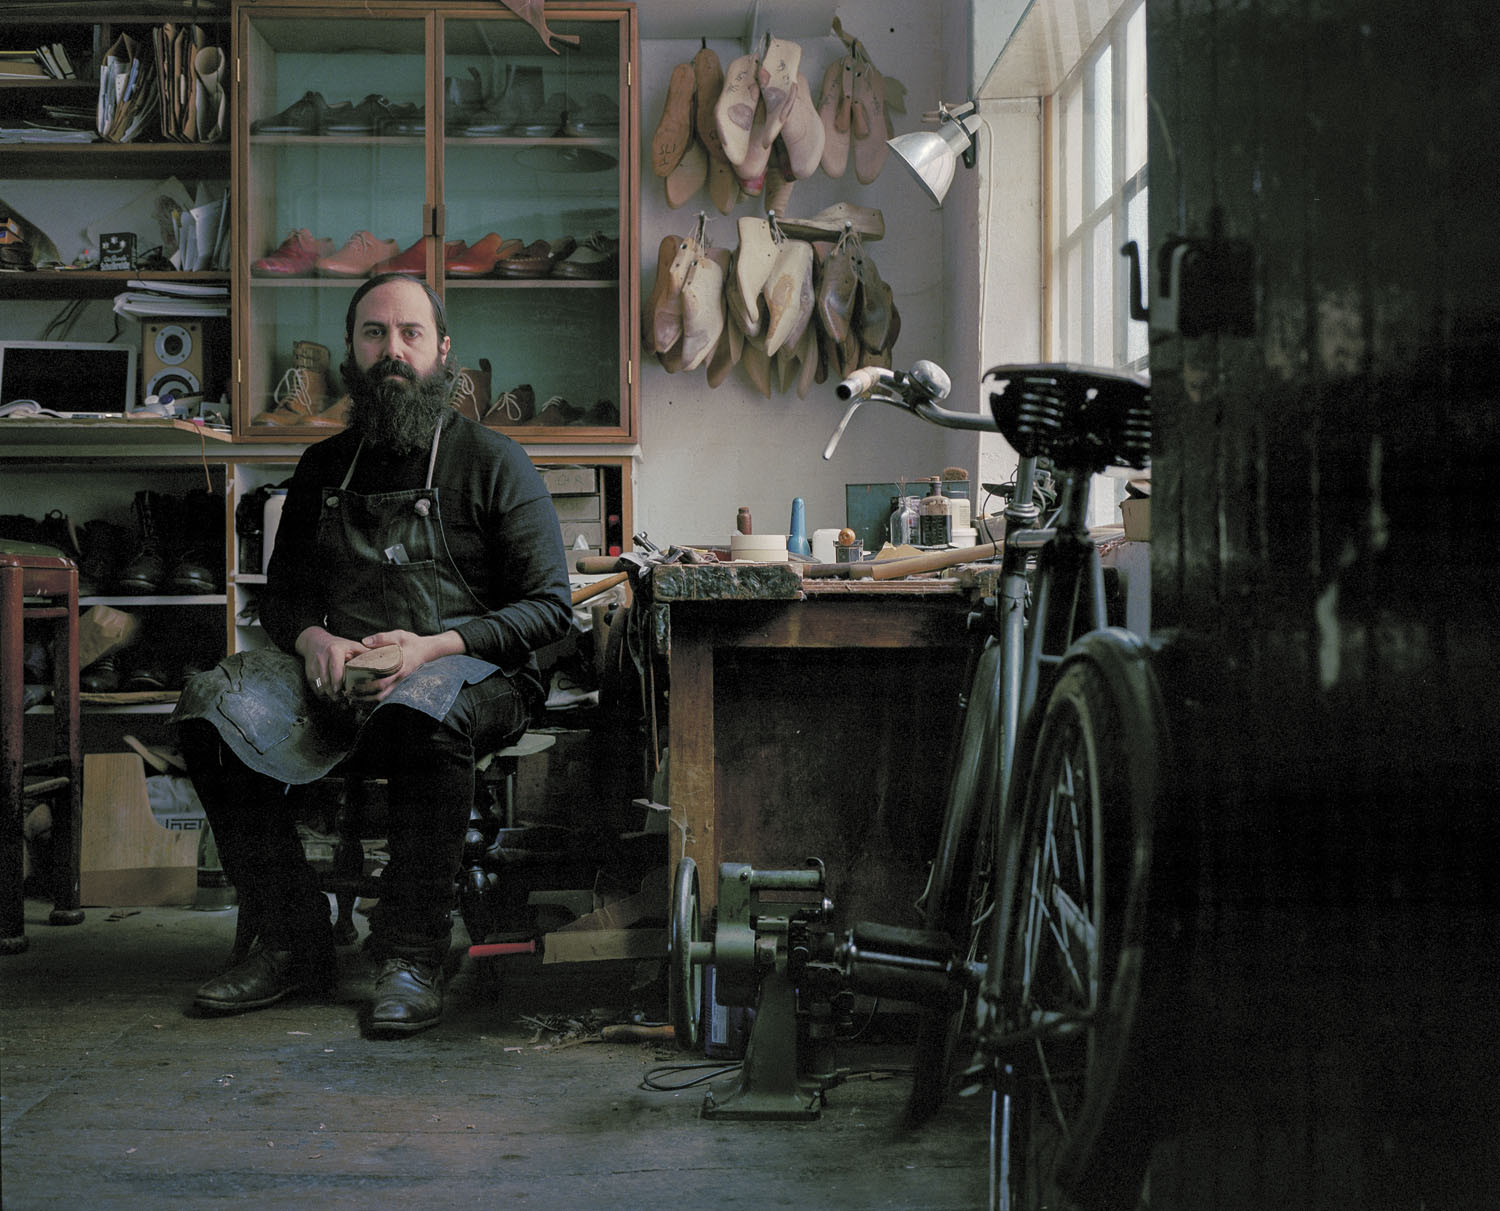 Sebastian Terek is a shoemaker based in London. Shoe making has been in his family for 18 generations and he uses strictly traditional methods to create bespoke shoes in his workshop in Hackney,London.  Photographed for Rapha